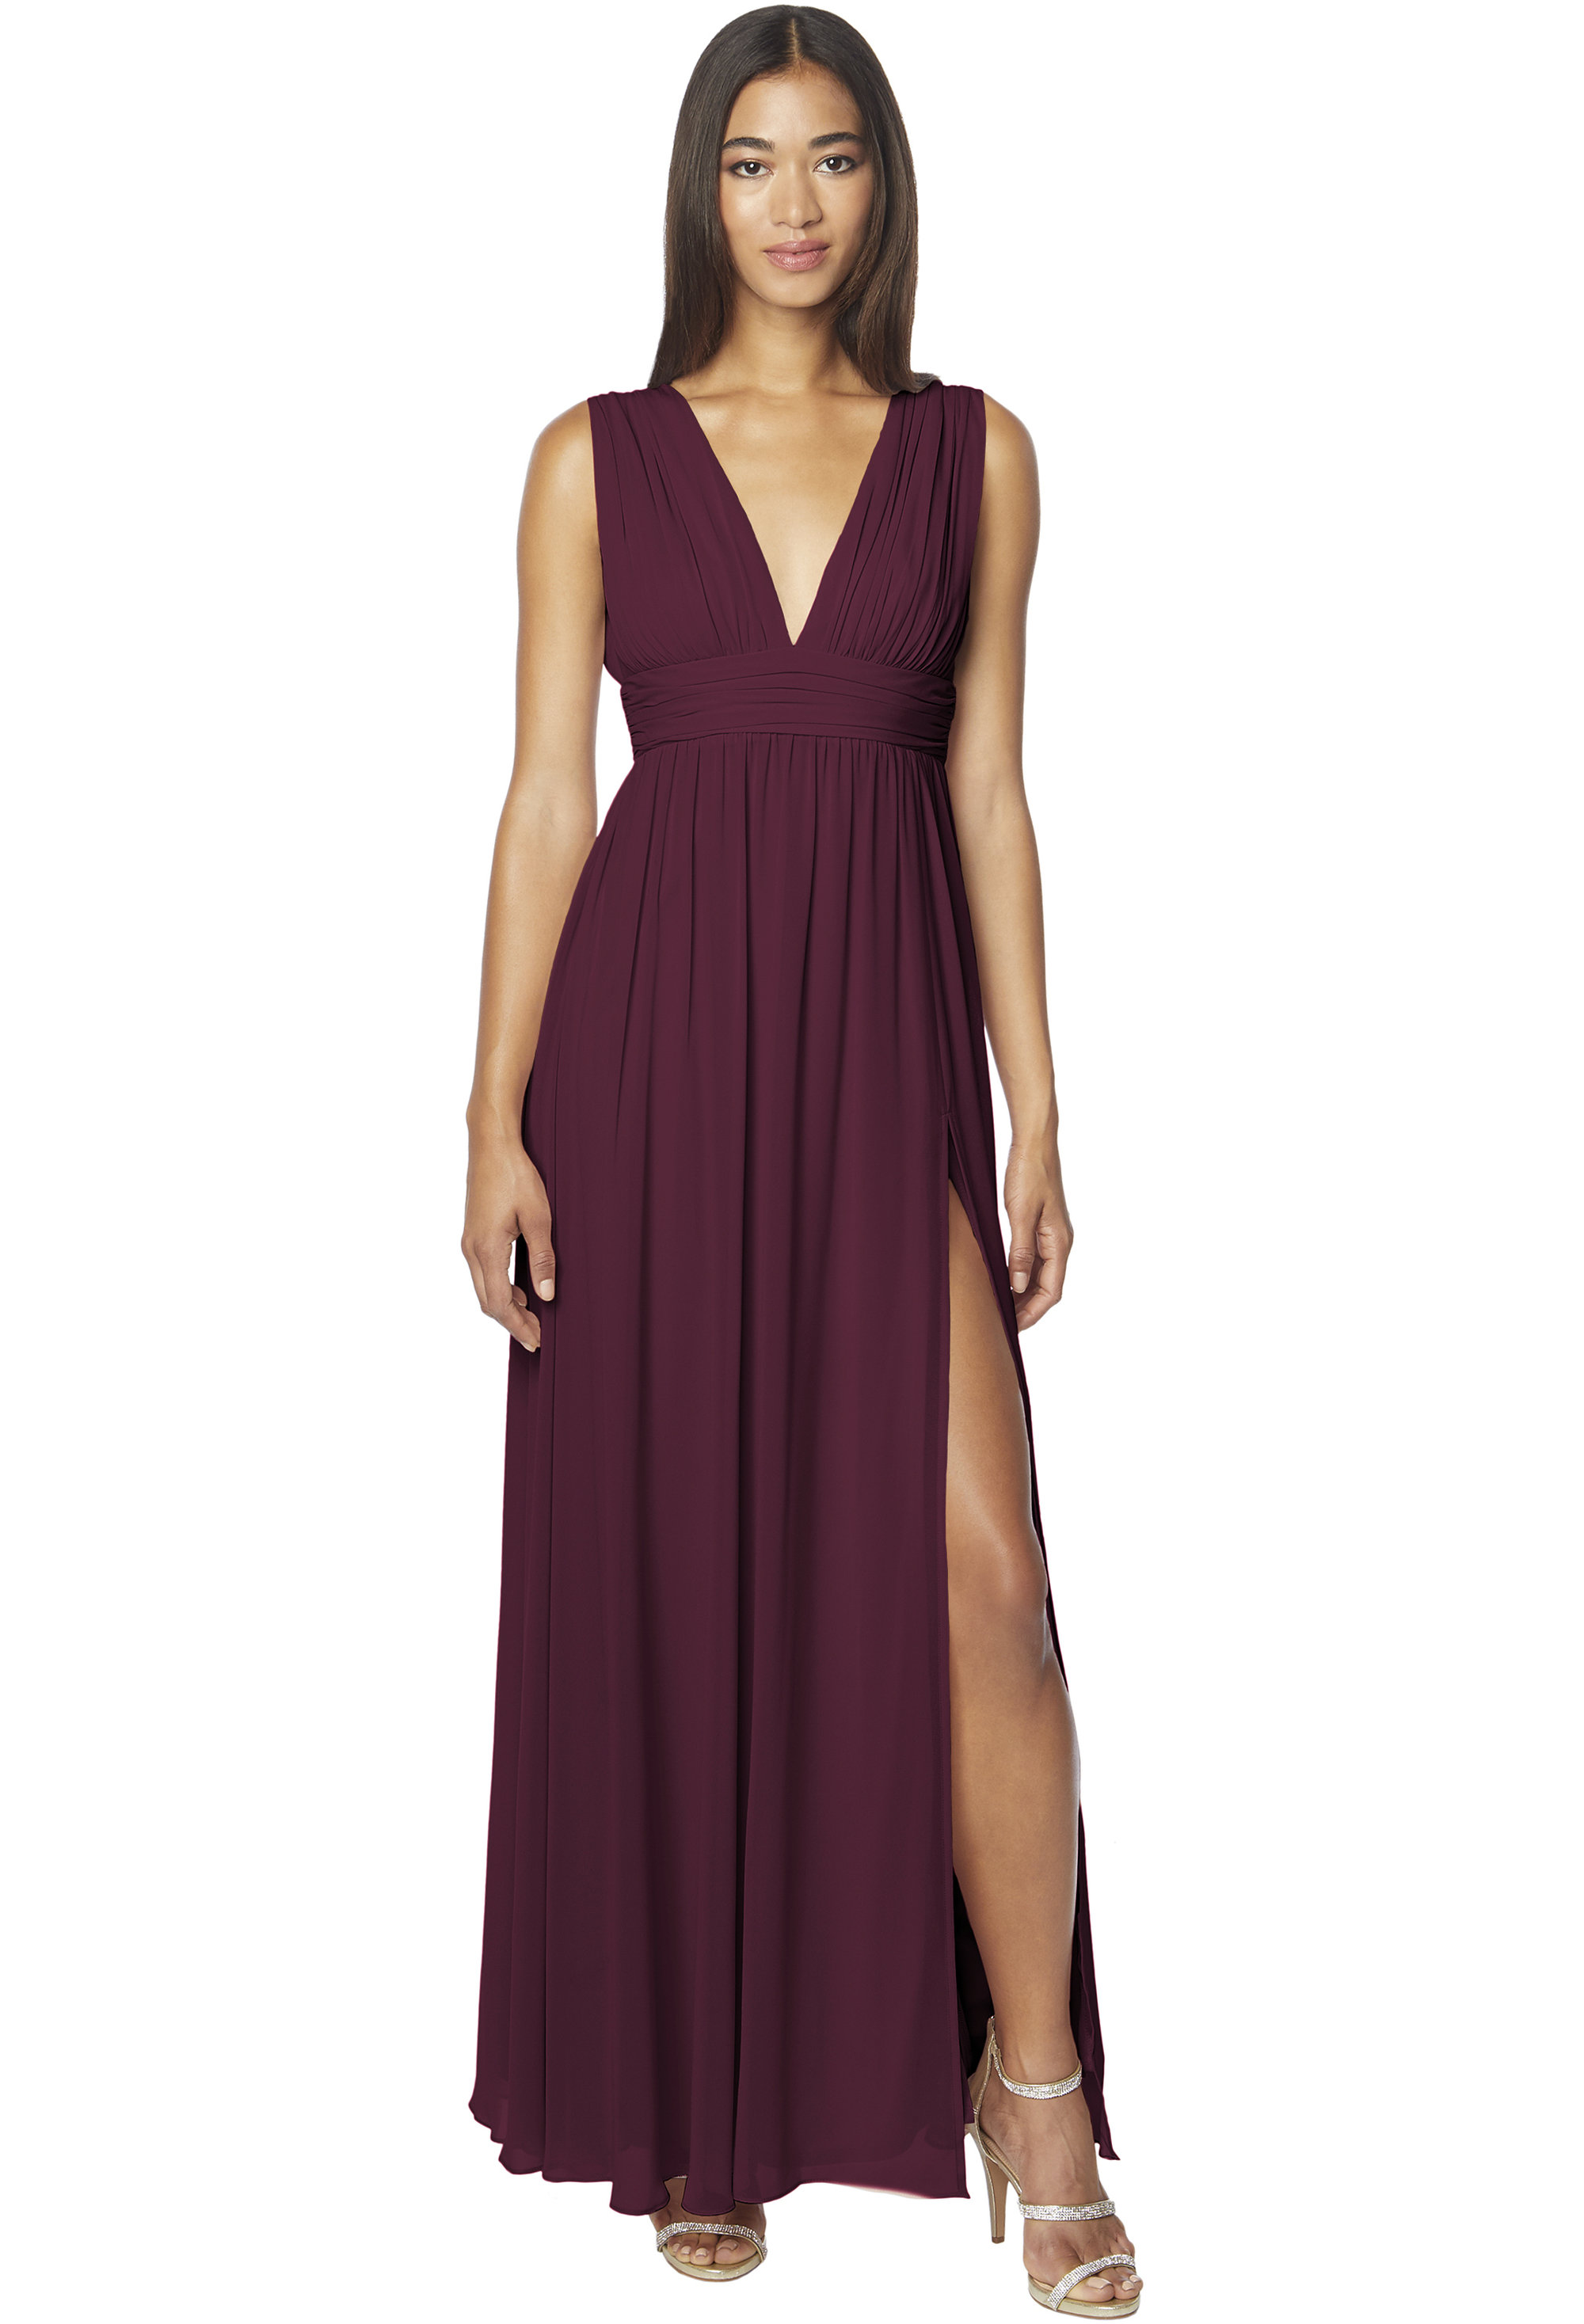 Bill Levkoff WINE Chiffon Sleeveless A-line gown, $178.00 Front